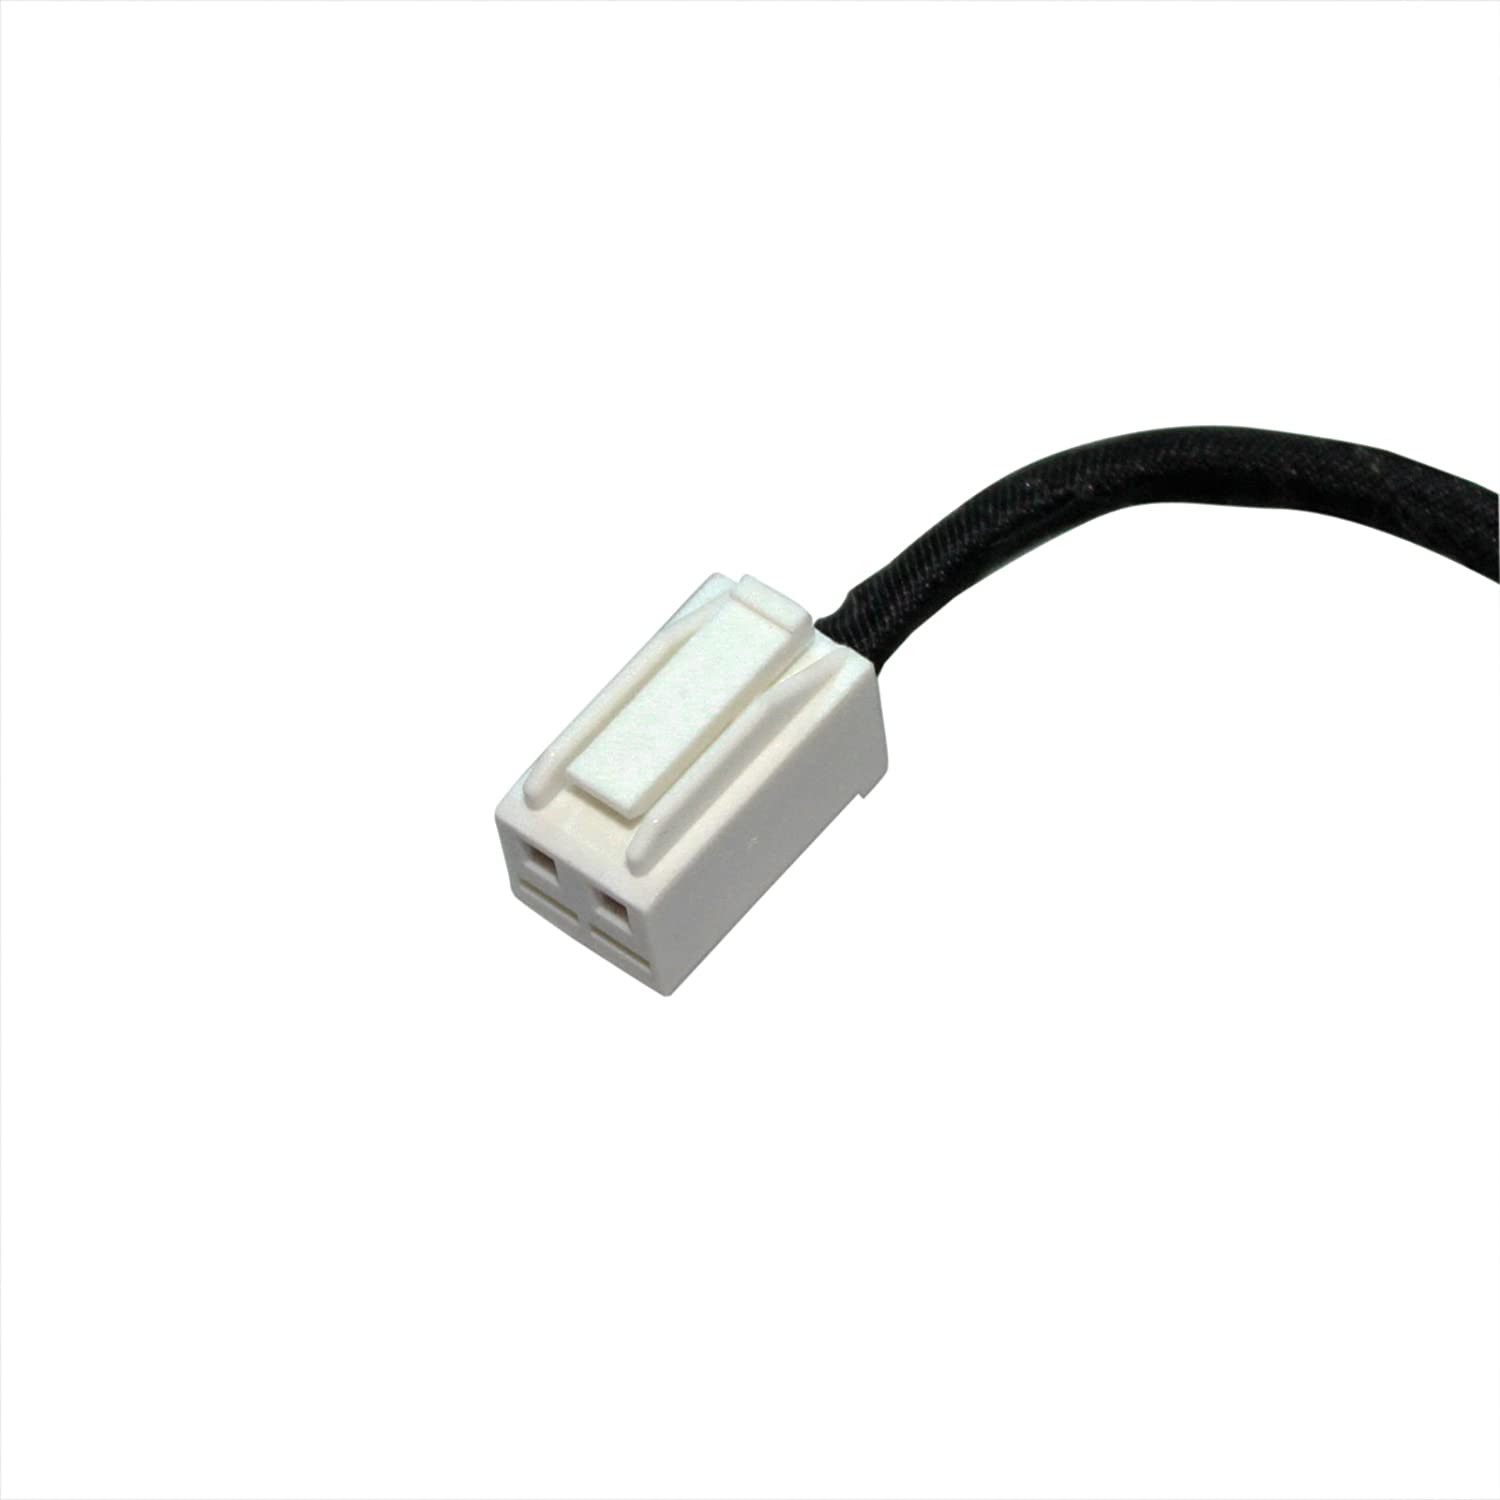 Sony Vaio VGN-A62B Power4Laptops Replacement Laptop DC Jack Socket with Cable for Sony Vaio VGN-A617M Sony Vaio VGN-A61B Sony Vaio VGN-A617S Sony Vaio VGN-A63